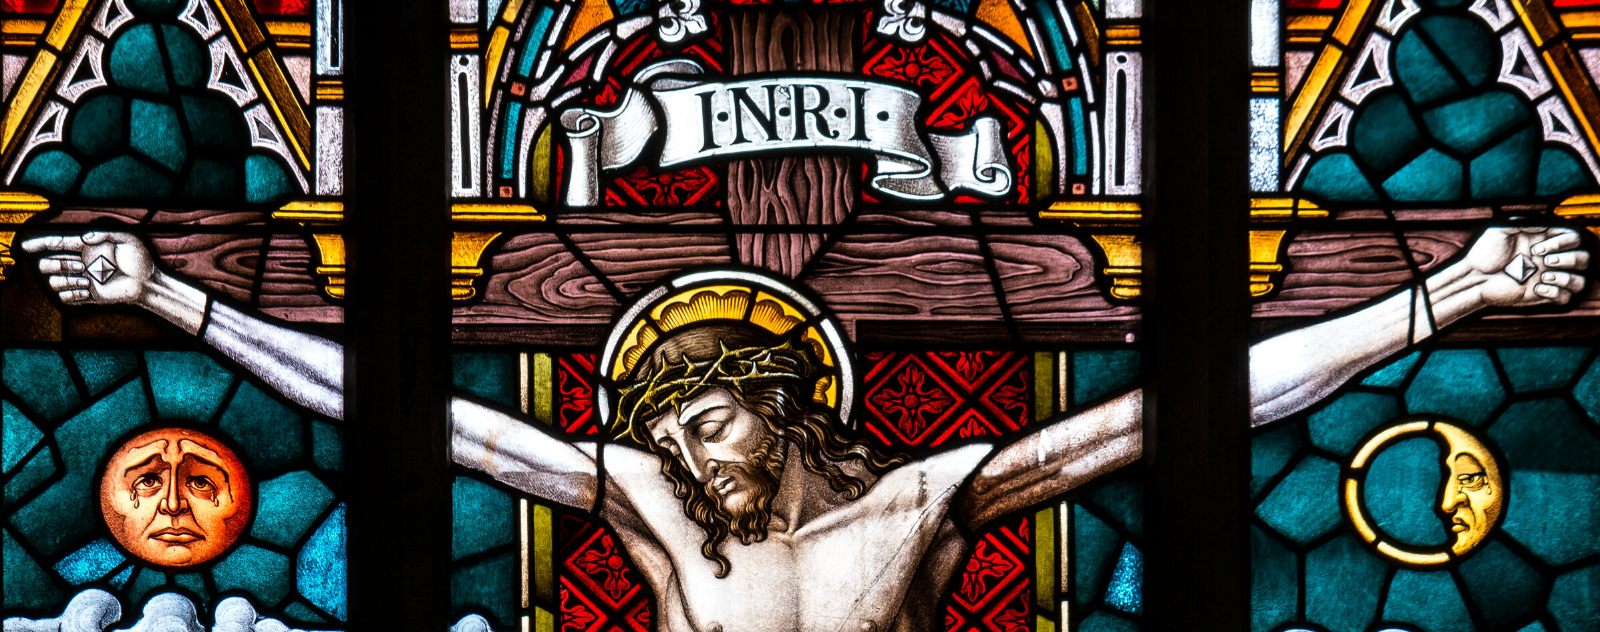 INRI Inscription on the Christian Cross